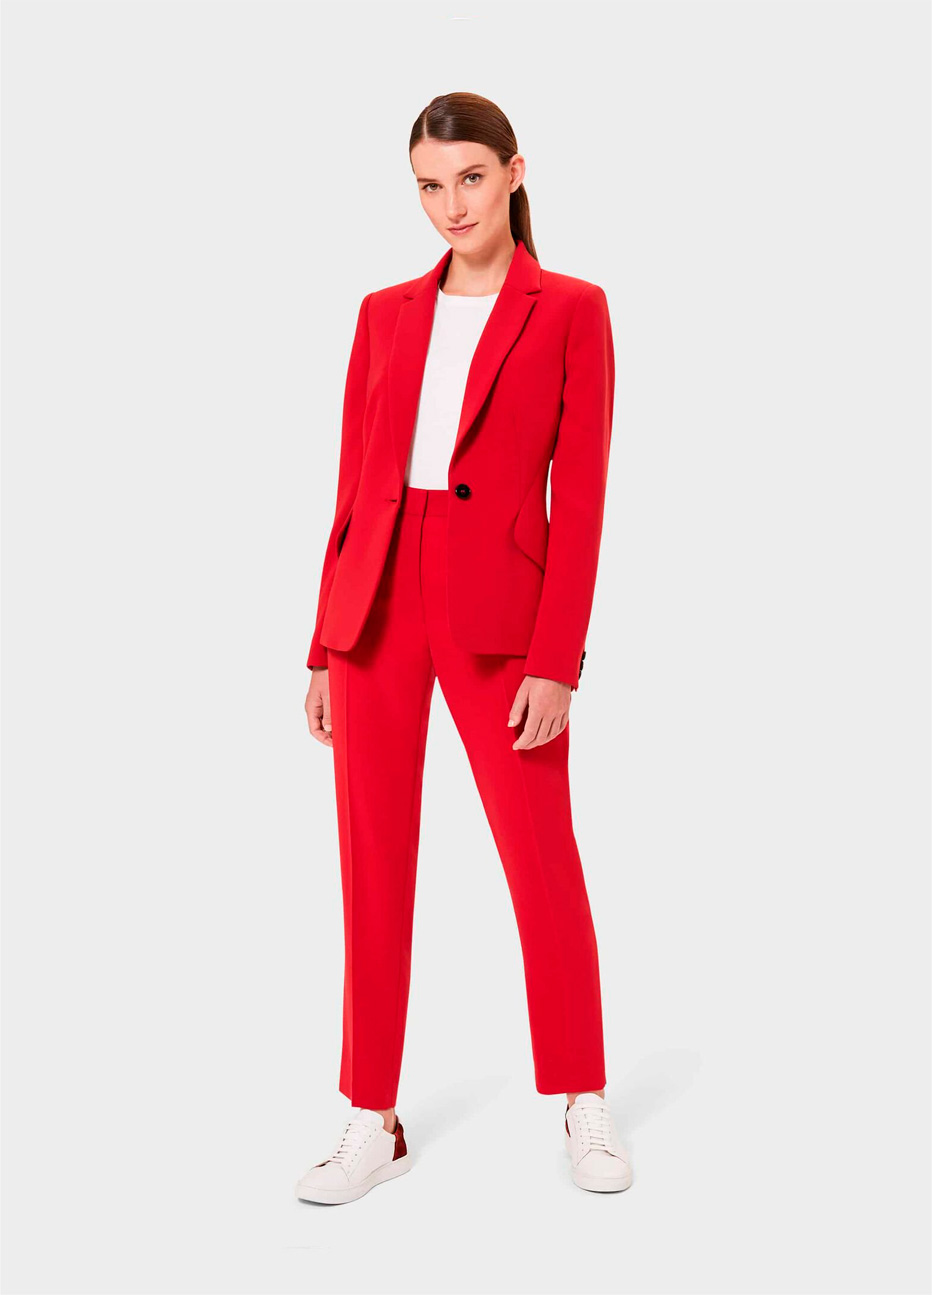 Women's trouser suit in red styled with a white top and white trainers by Hobbs.